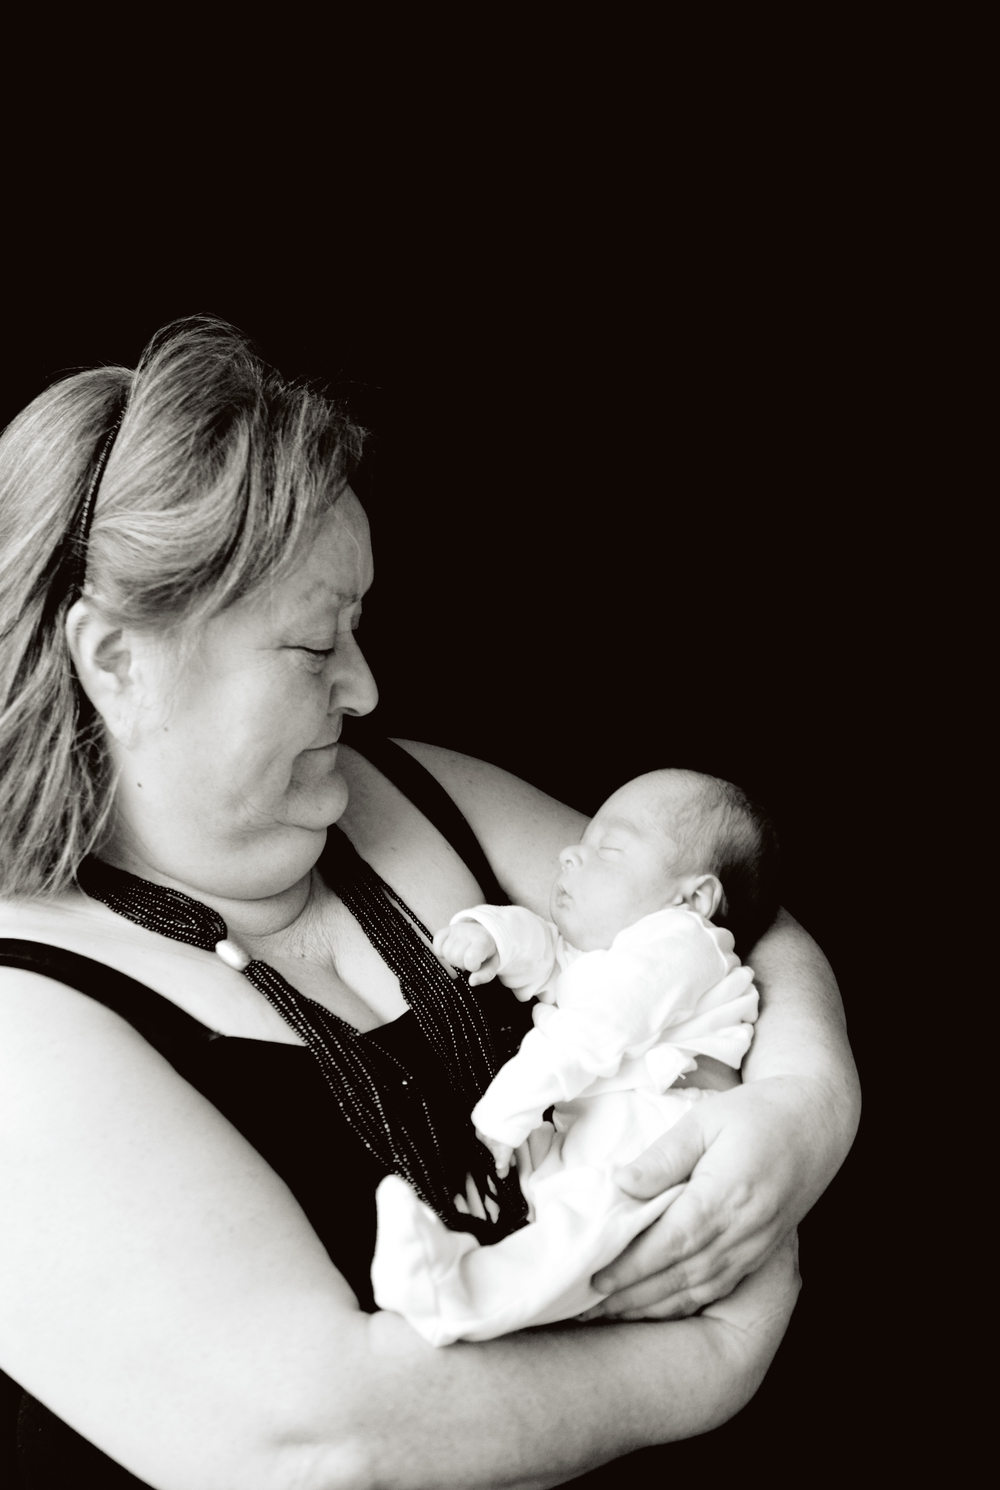 Finally, what my Auntie has been waiting for...a picture of her and her grandson, Mason.  Isn't he the cutest.  I am grateful for him...his session was a lesson and will make me a better photographer.